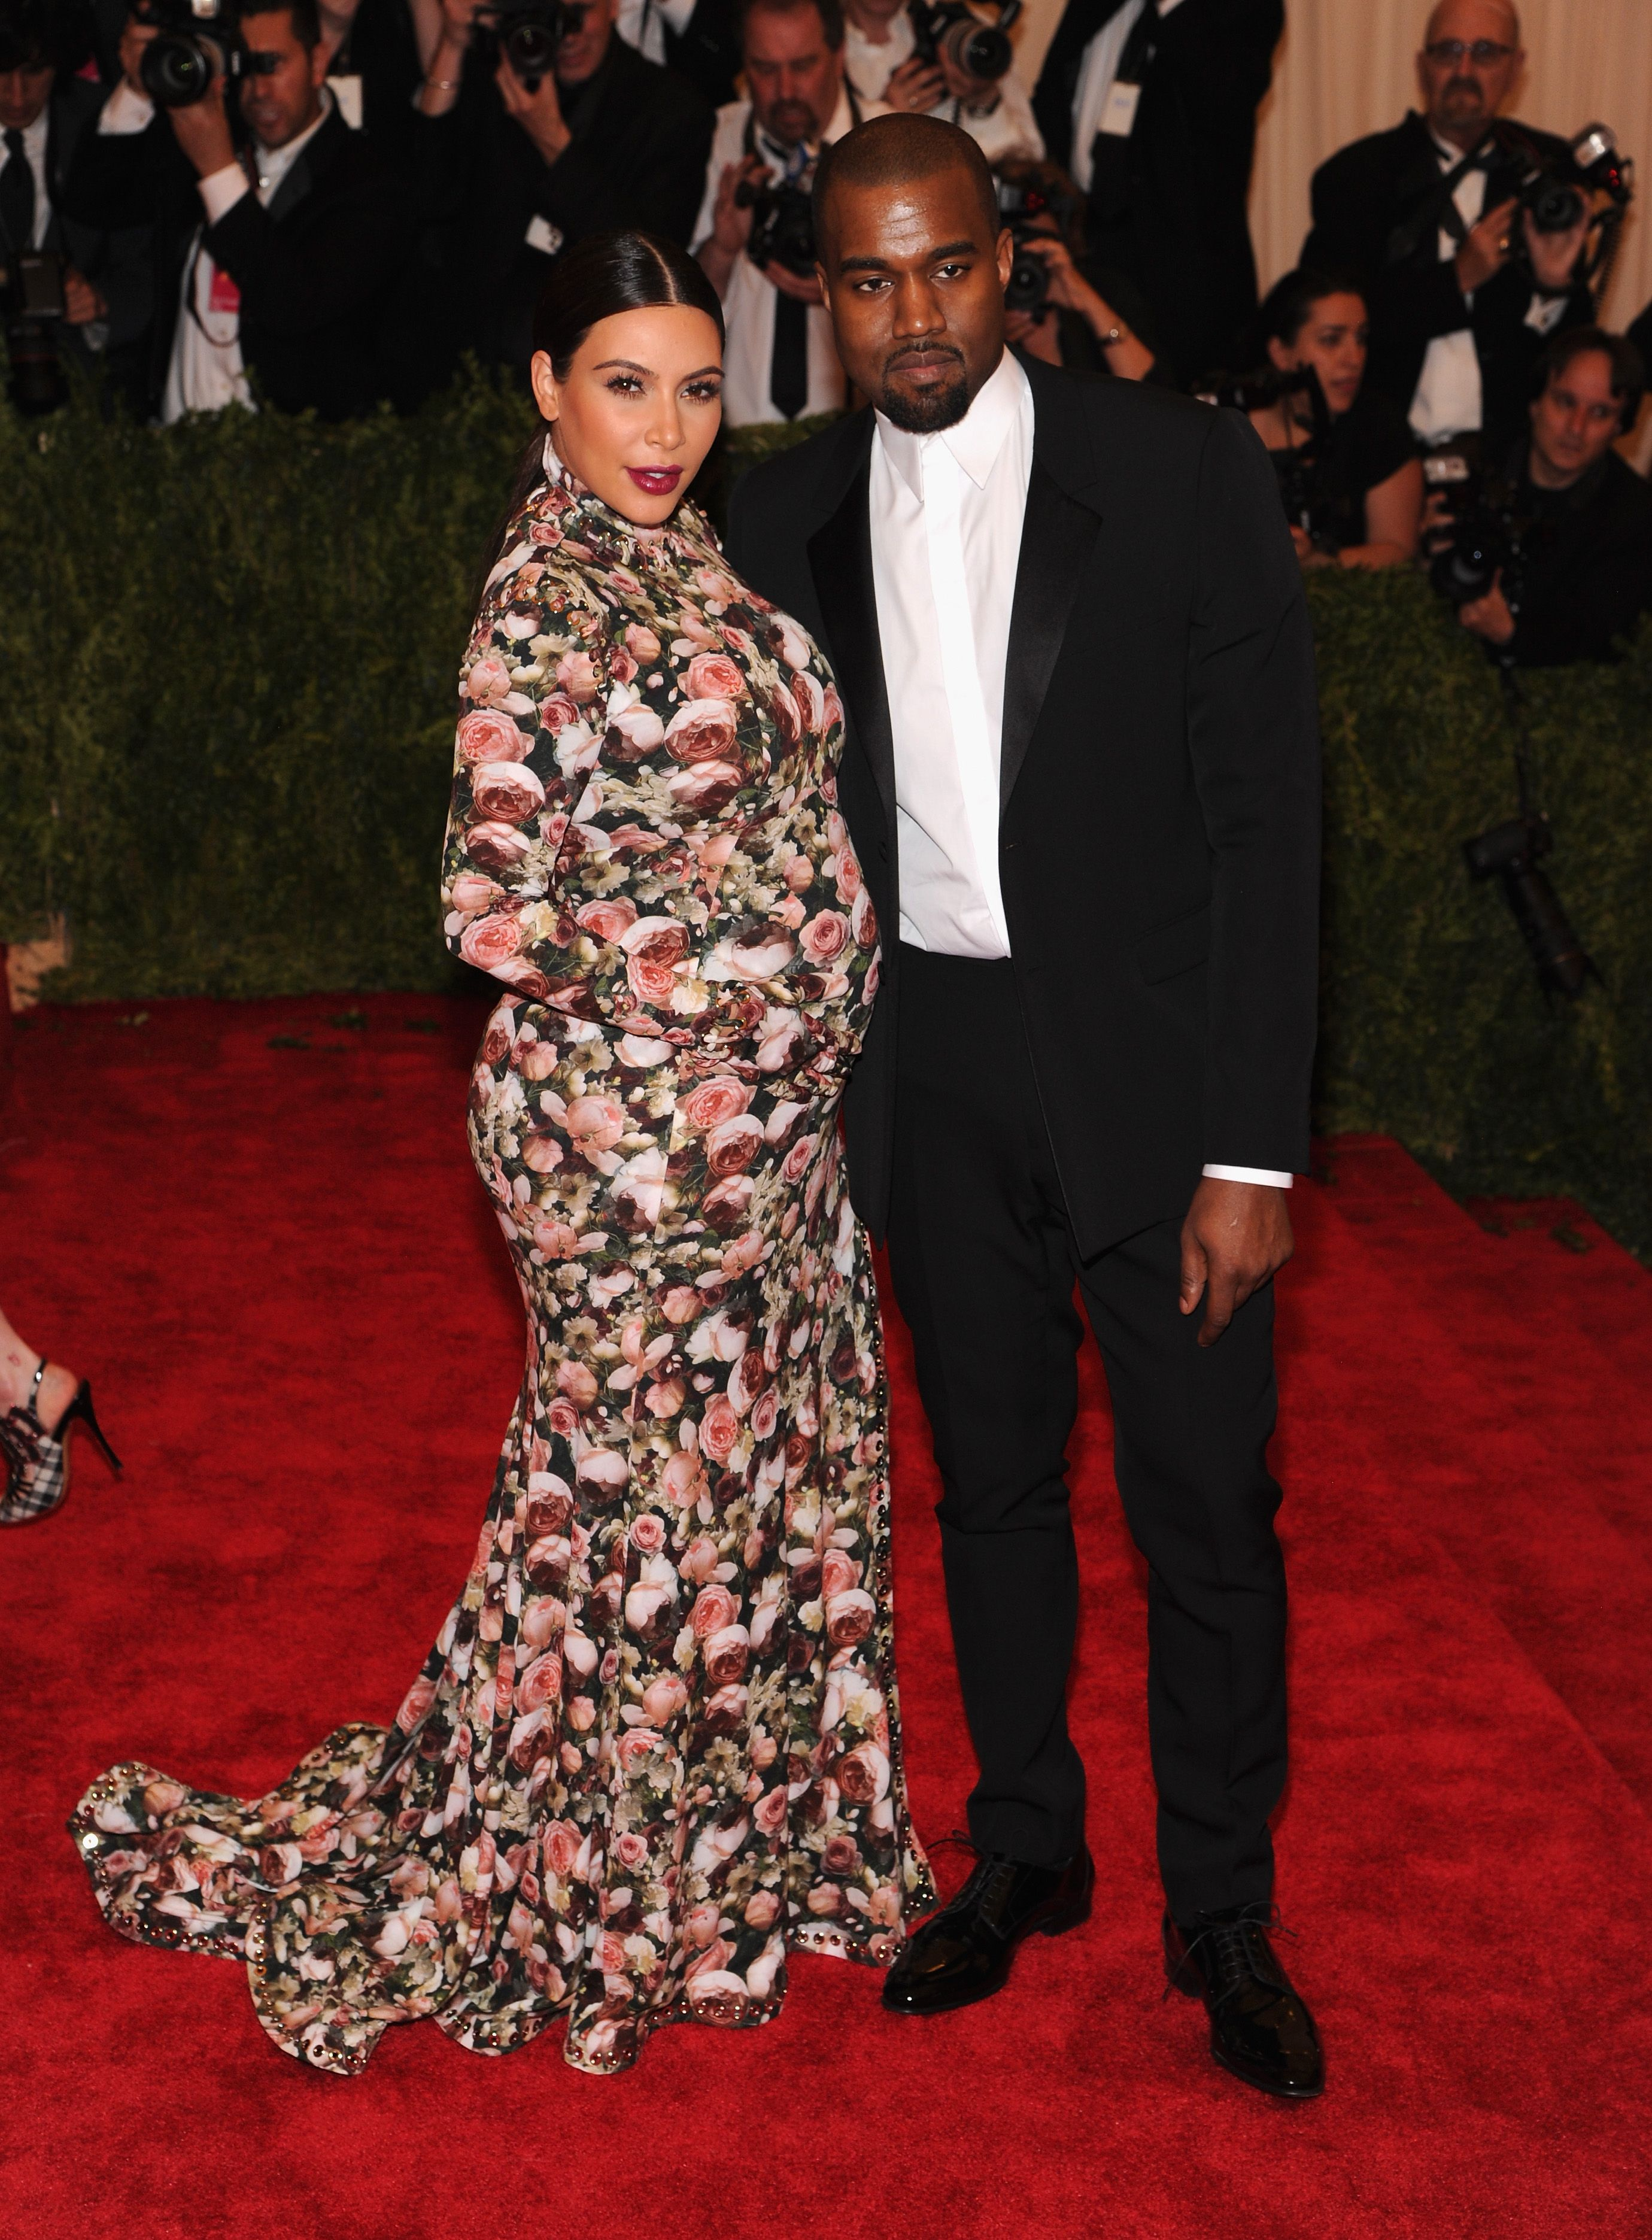 Kim Kardashian Cried After the 2013 Met Gala For This Reason